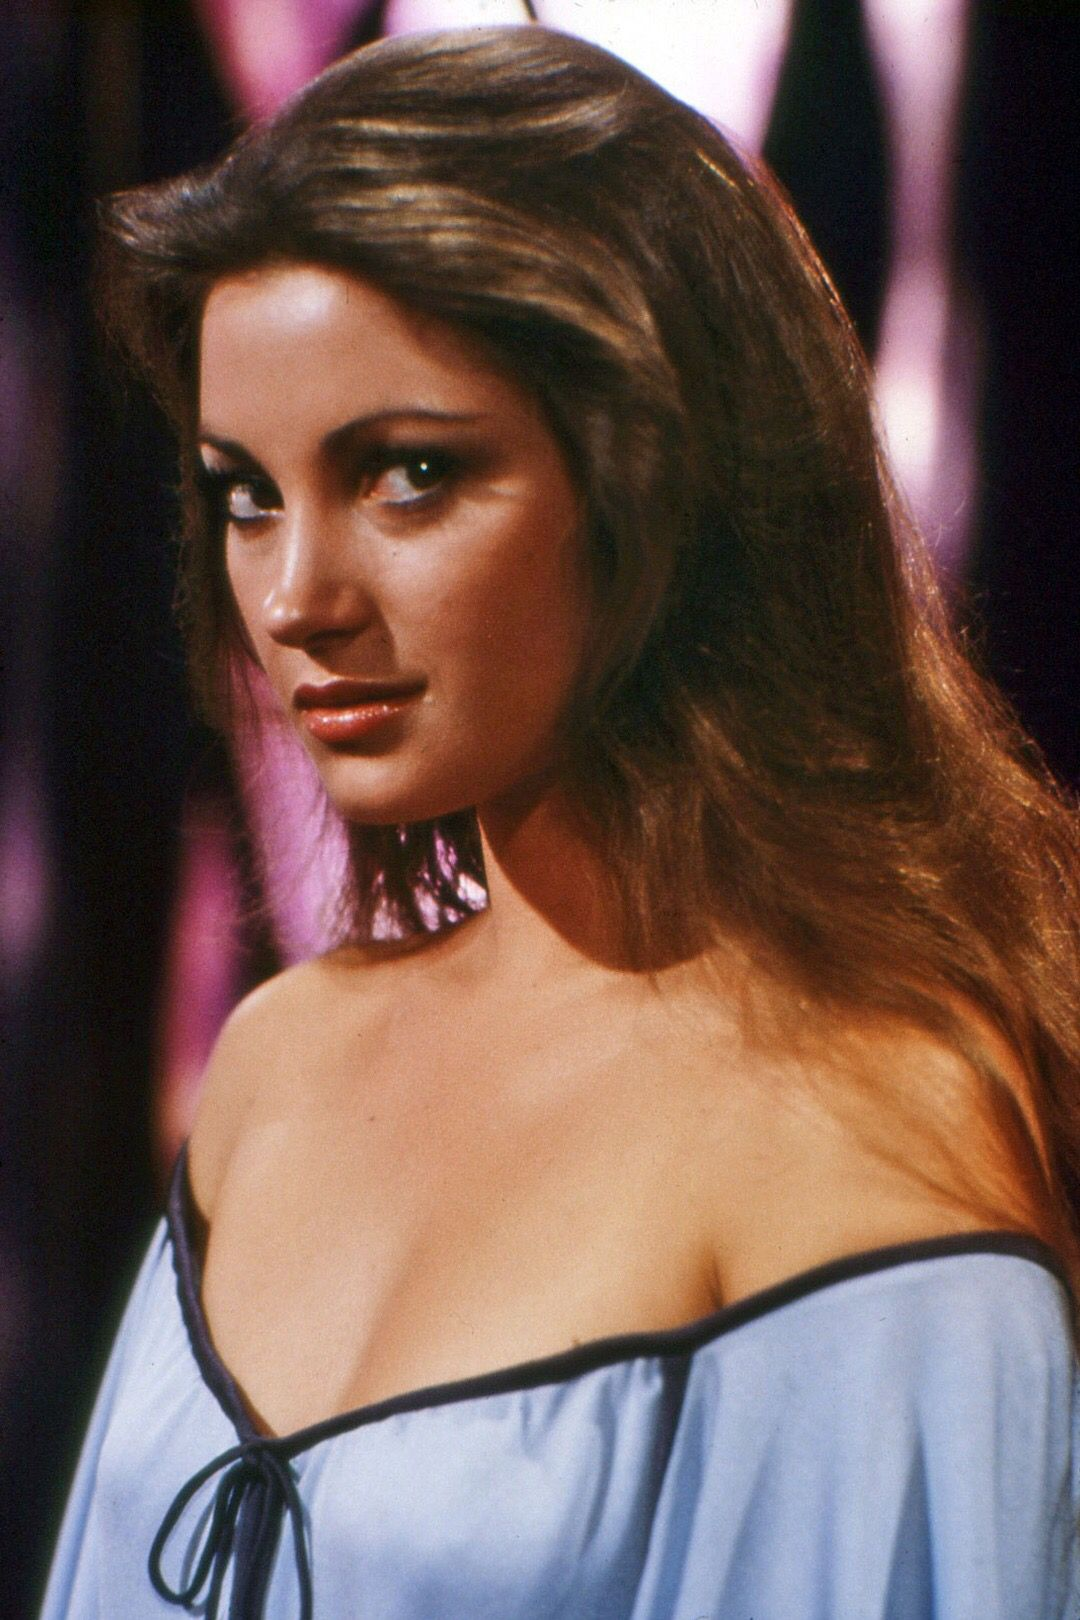 Jane Seymour As Serina In Battlestar Galactica 1978 Lady